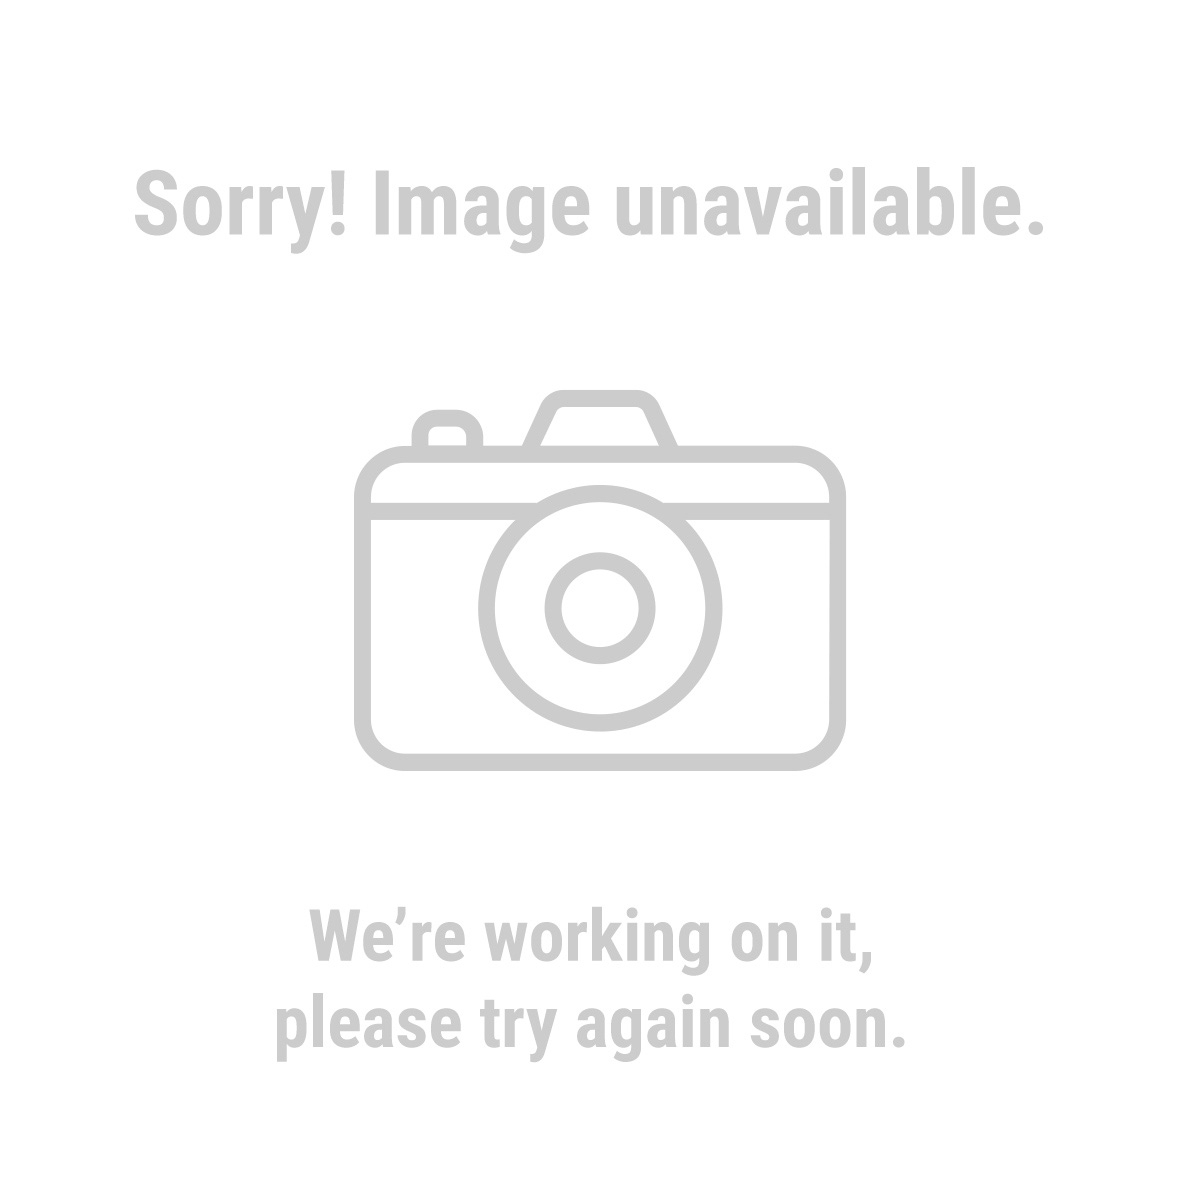 Pittsburgh 69093 4-in-1 Quick Change Multi Head Hammer